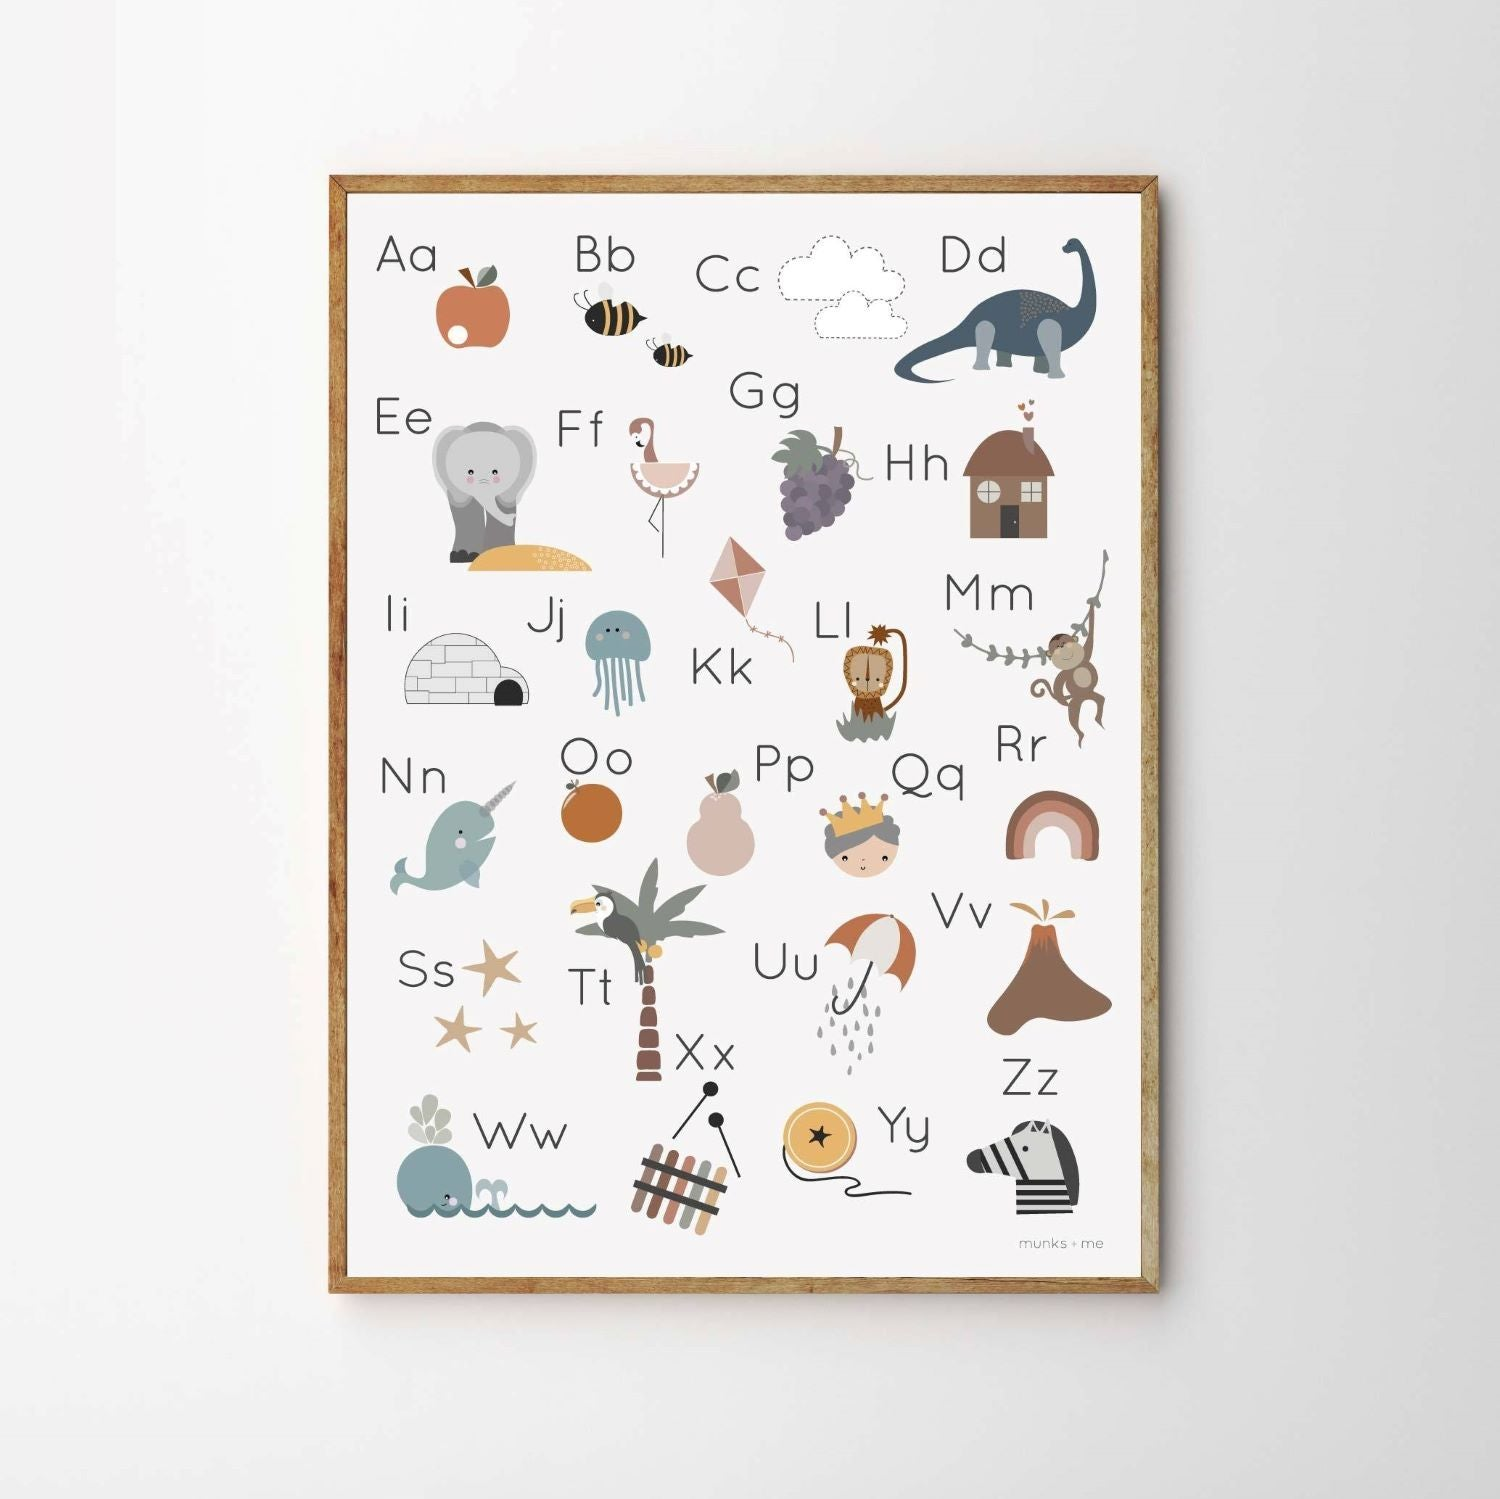 Munks and Me - Character Alphabet Poster Art Print - A3